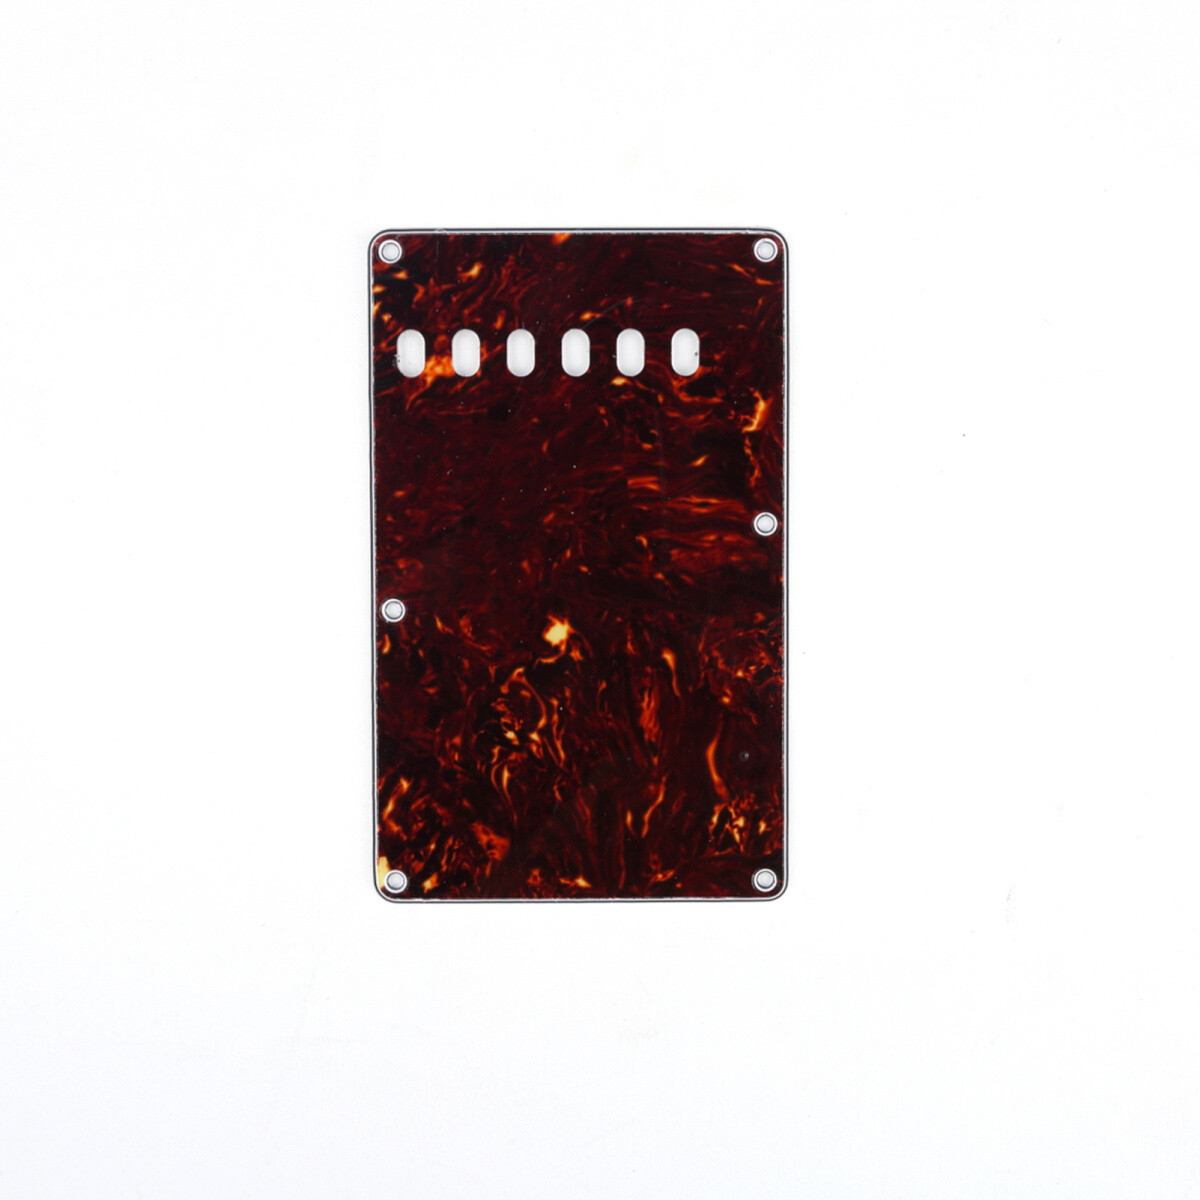 Brio Brown Tortoise Vintage Style Back Plate Tremolo Cover 4 ply - US/Mexican Fender®Strat® Fit